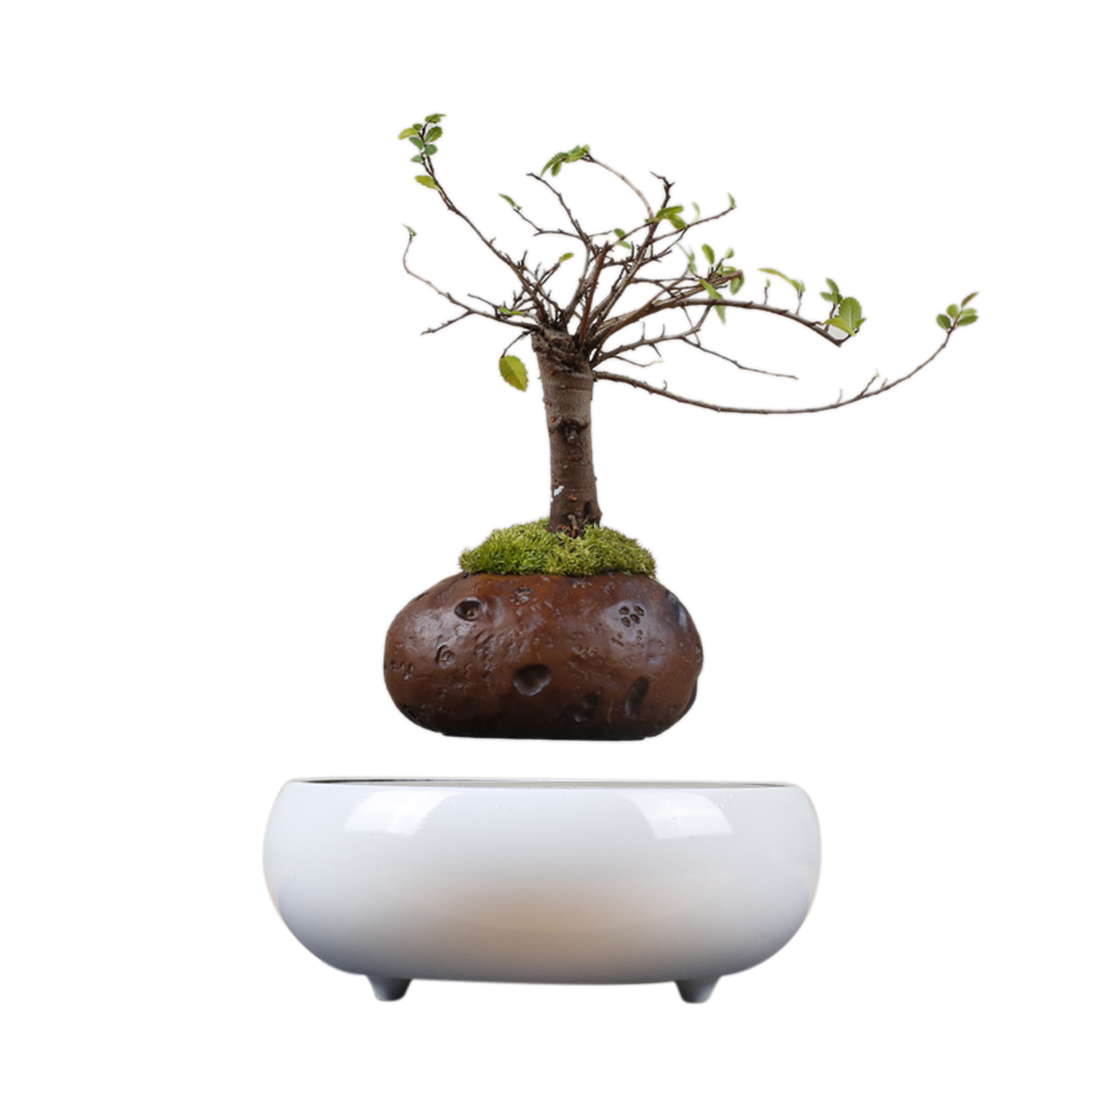 New Popular Suspended Plant Pot Floating Magnetic Plant with Imitation Ceramic Base for Home Office Garden Decor - EU PlugNew Popular Suspended Plant Pot Floating Magnetic Plant with Imitation Ceramic Base for Home Office Garden Decor - EU Plug